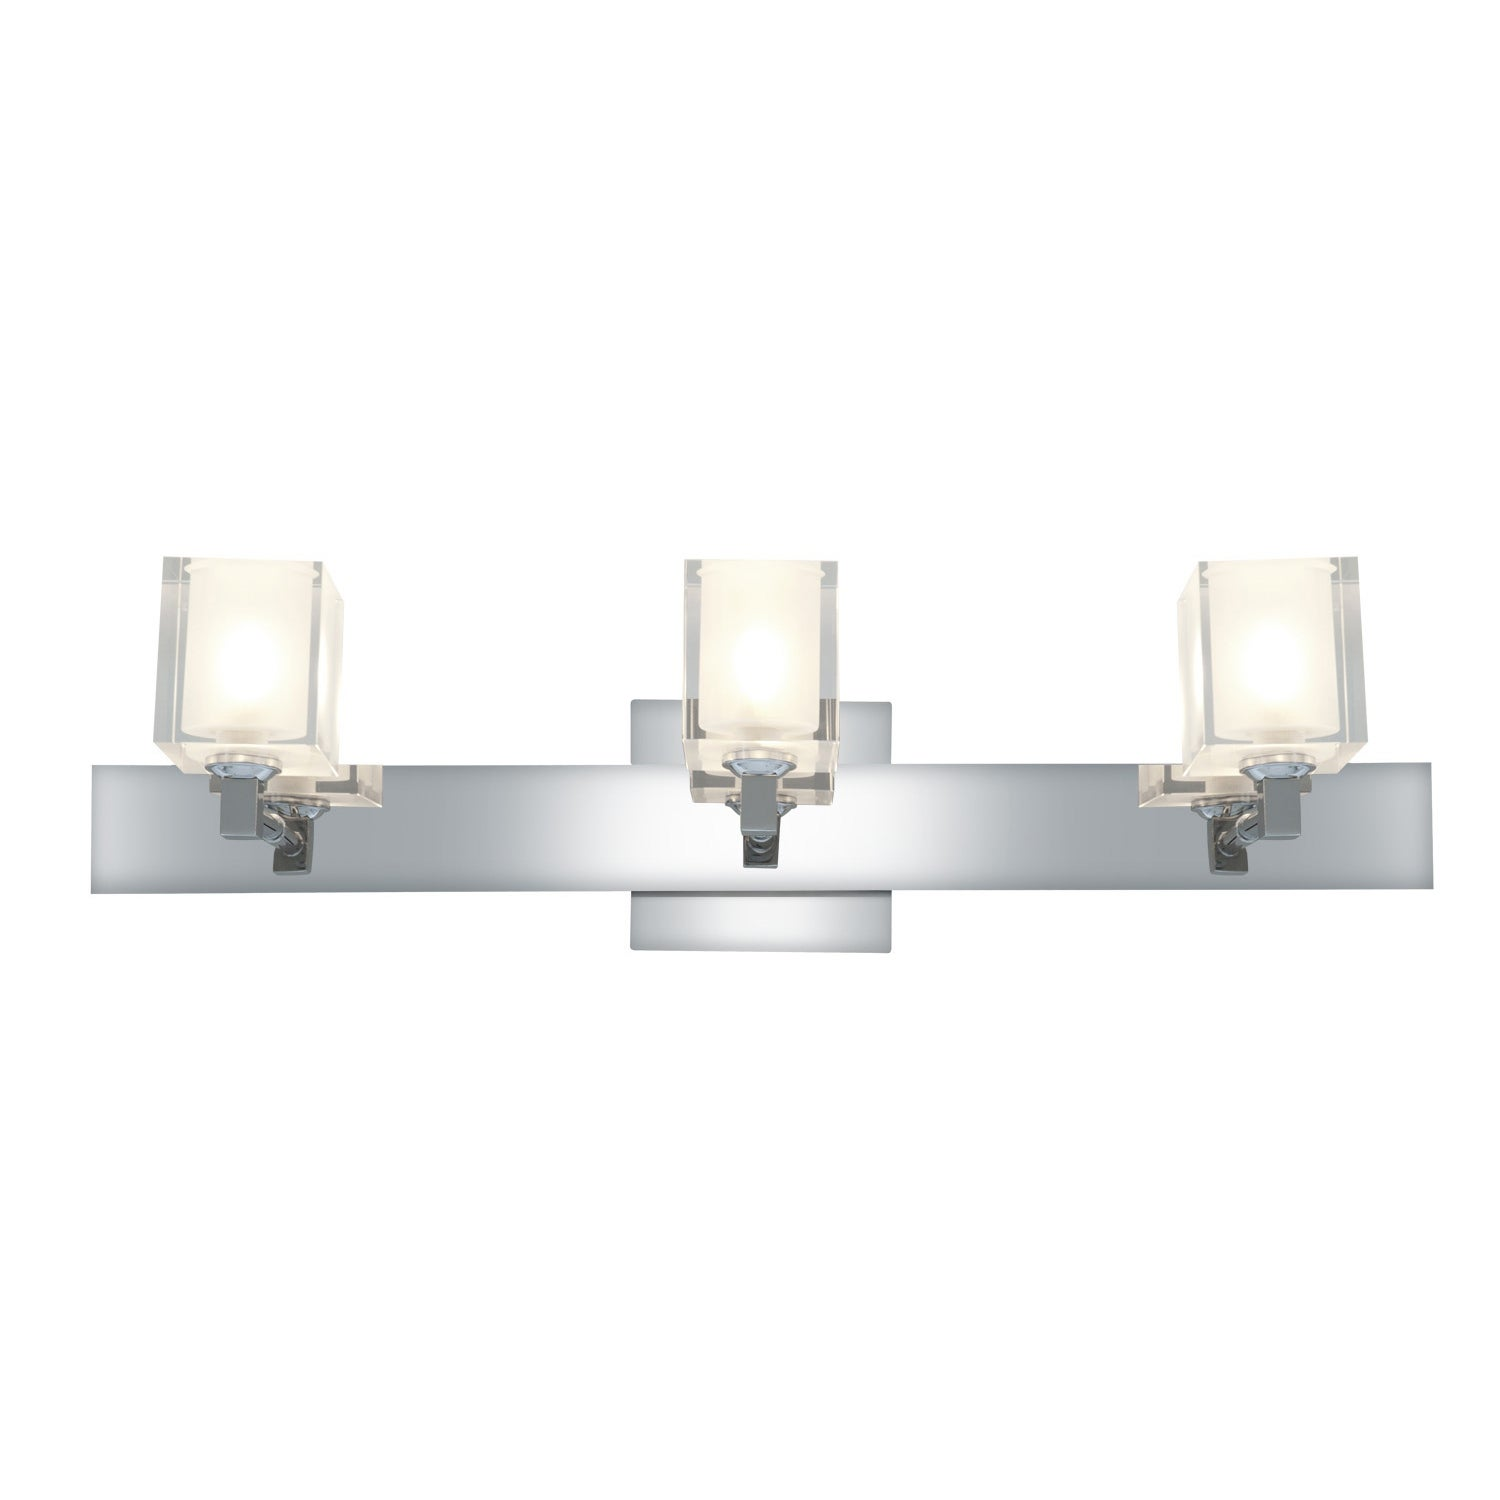 Access Glas'e 3-light Chrome Square Vanity Fixture